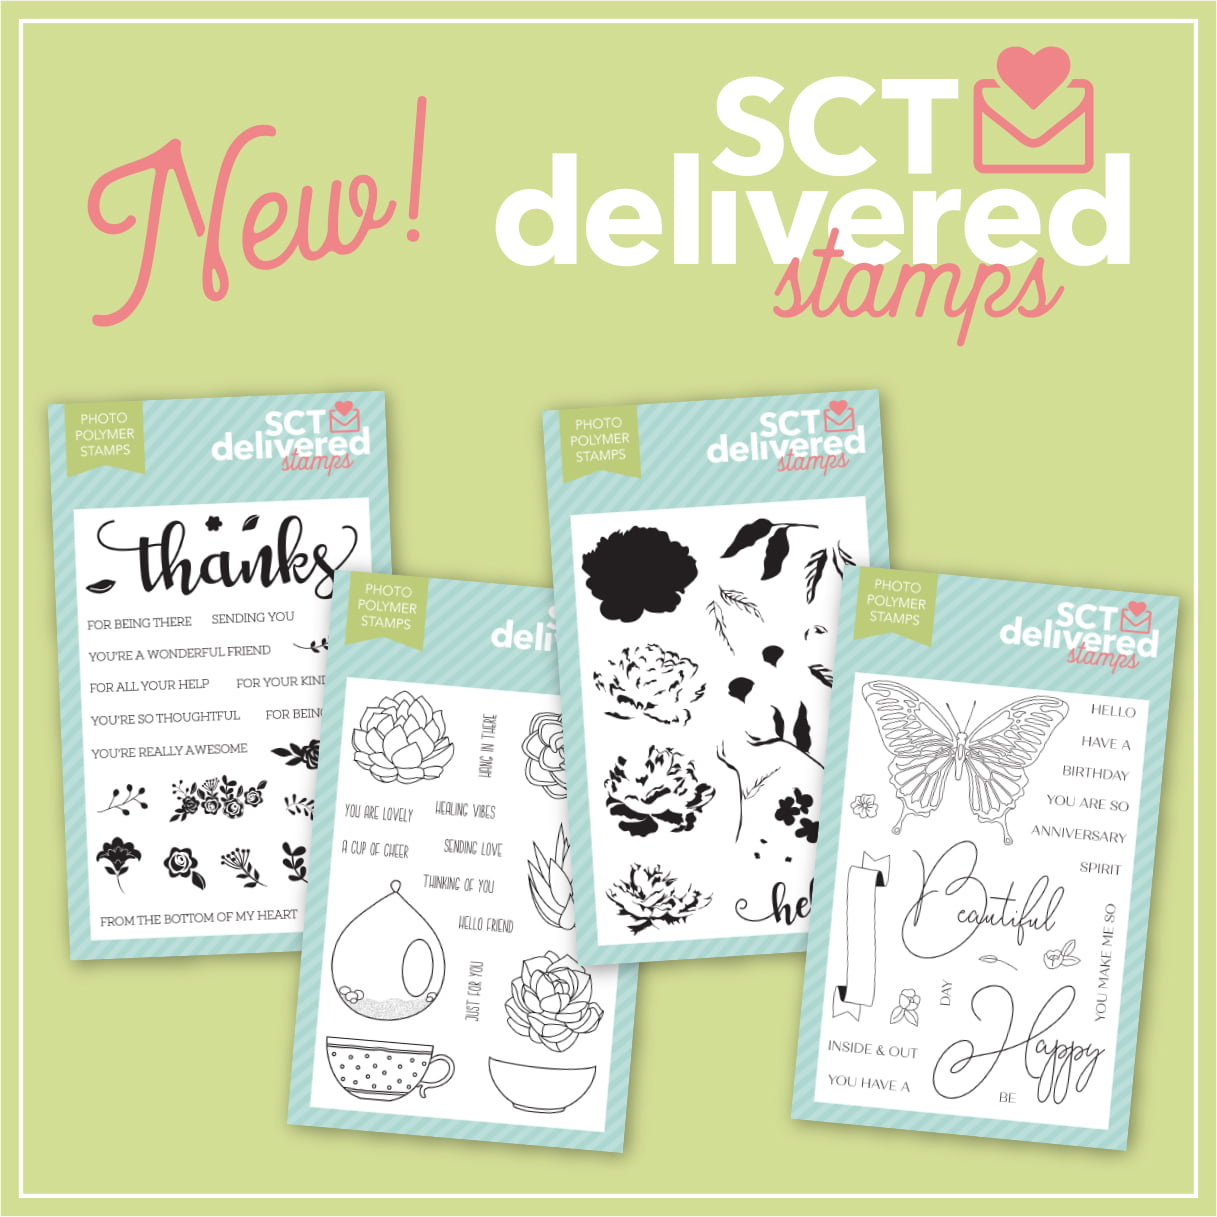 SCT Delivered Stamps